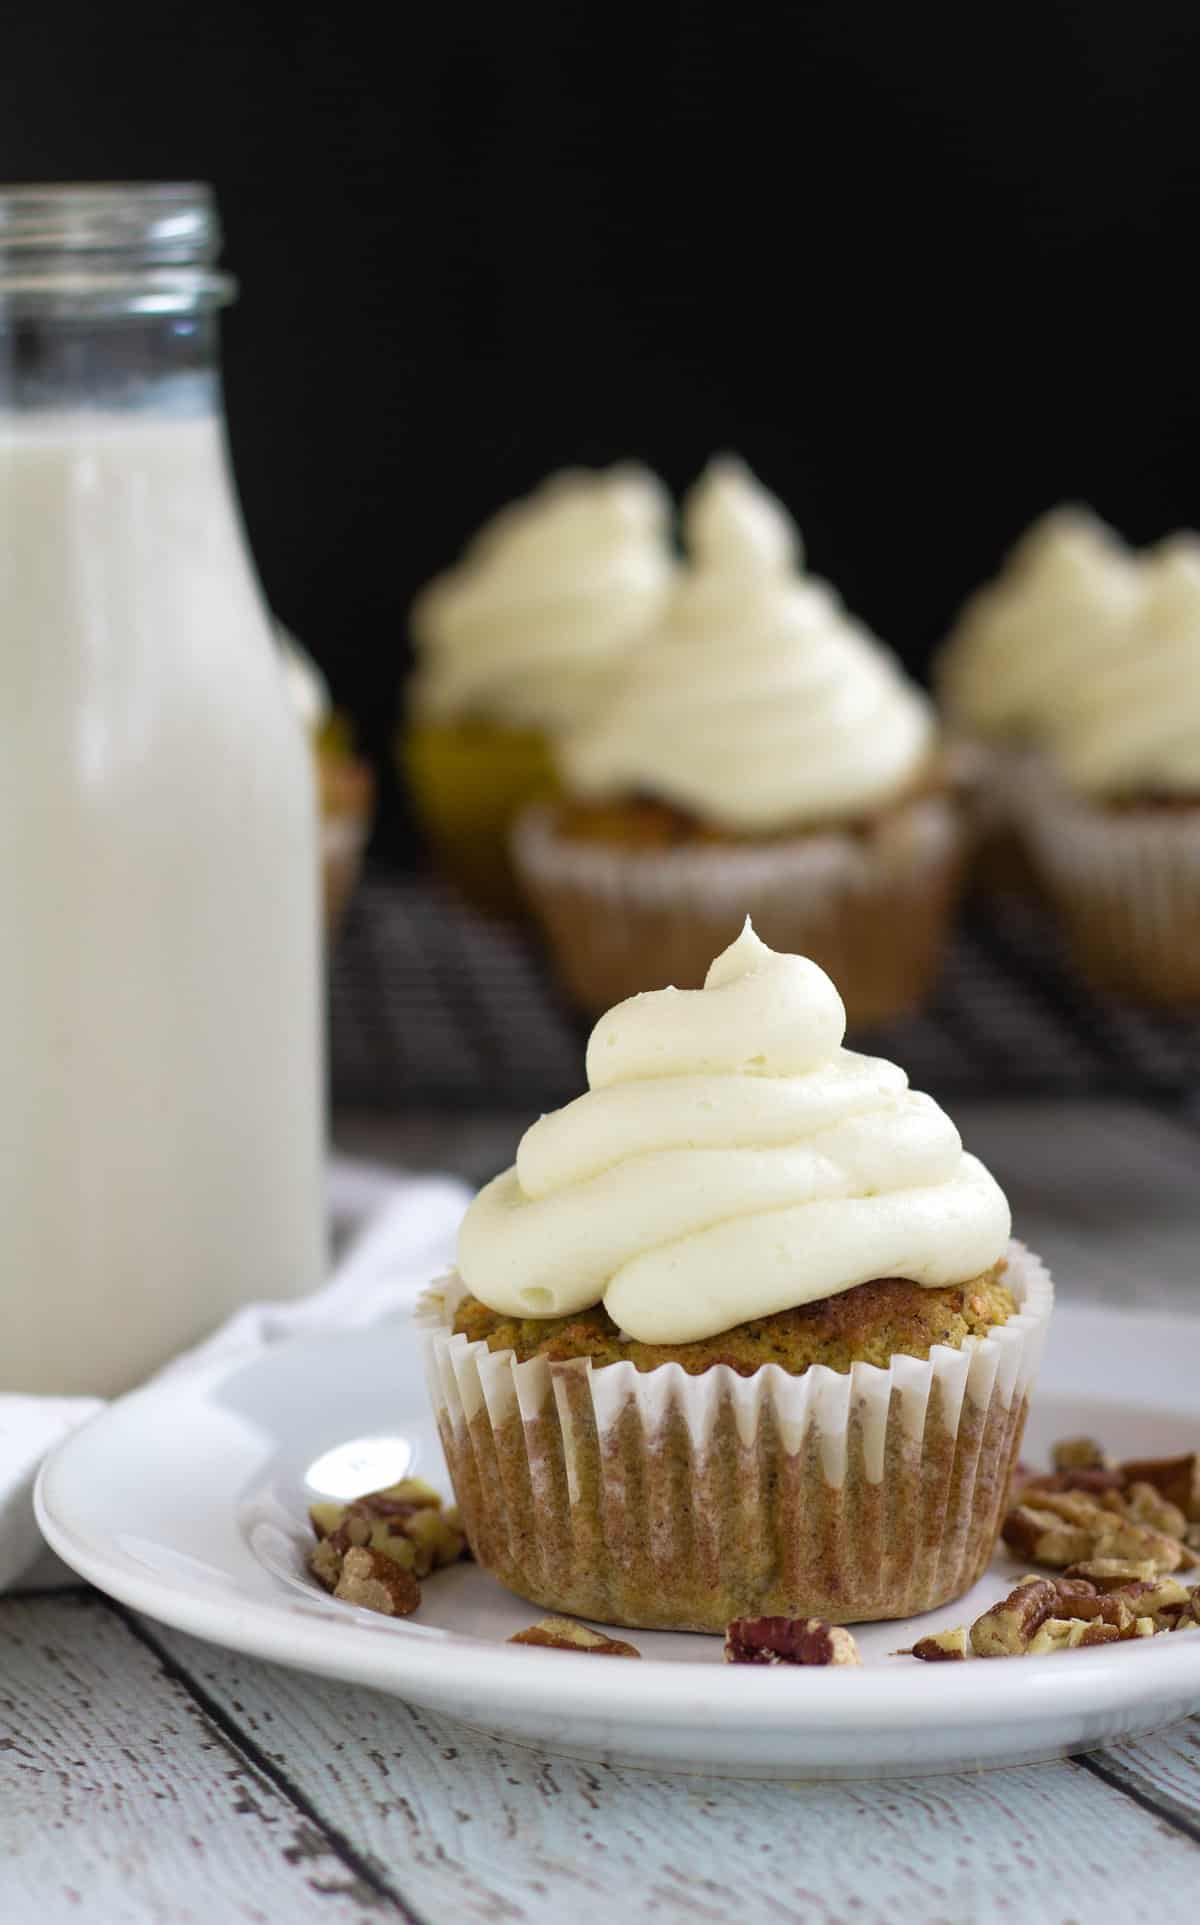 frosted cupcake on small white plate with milk and carrot cake cupcakes in the background